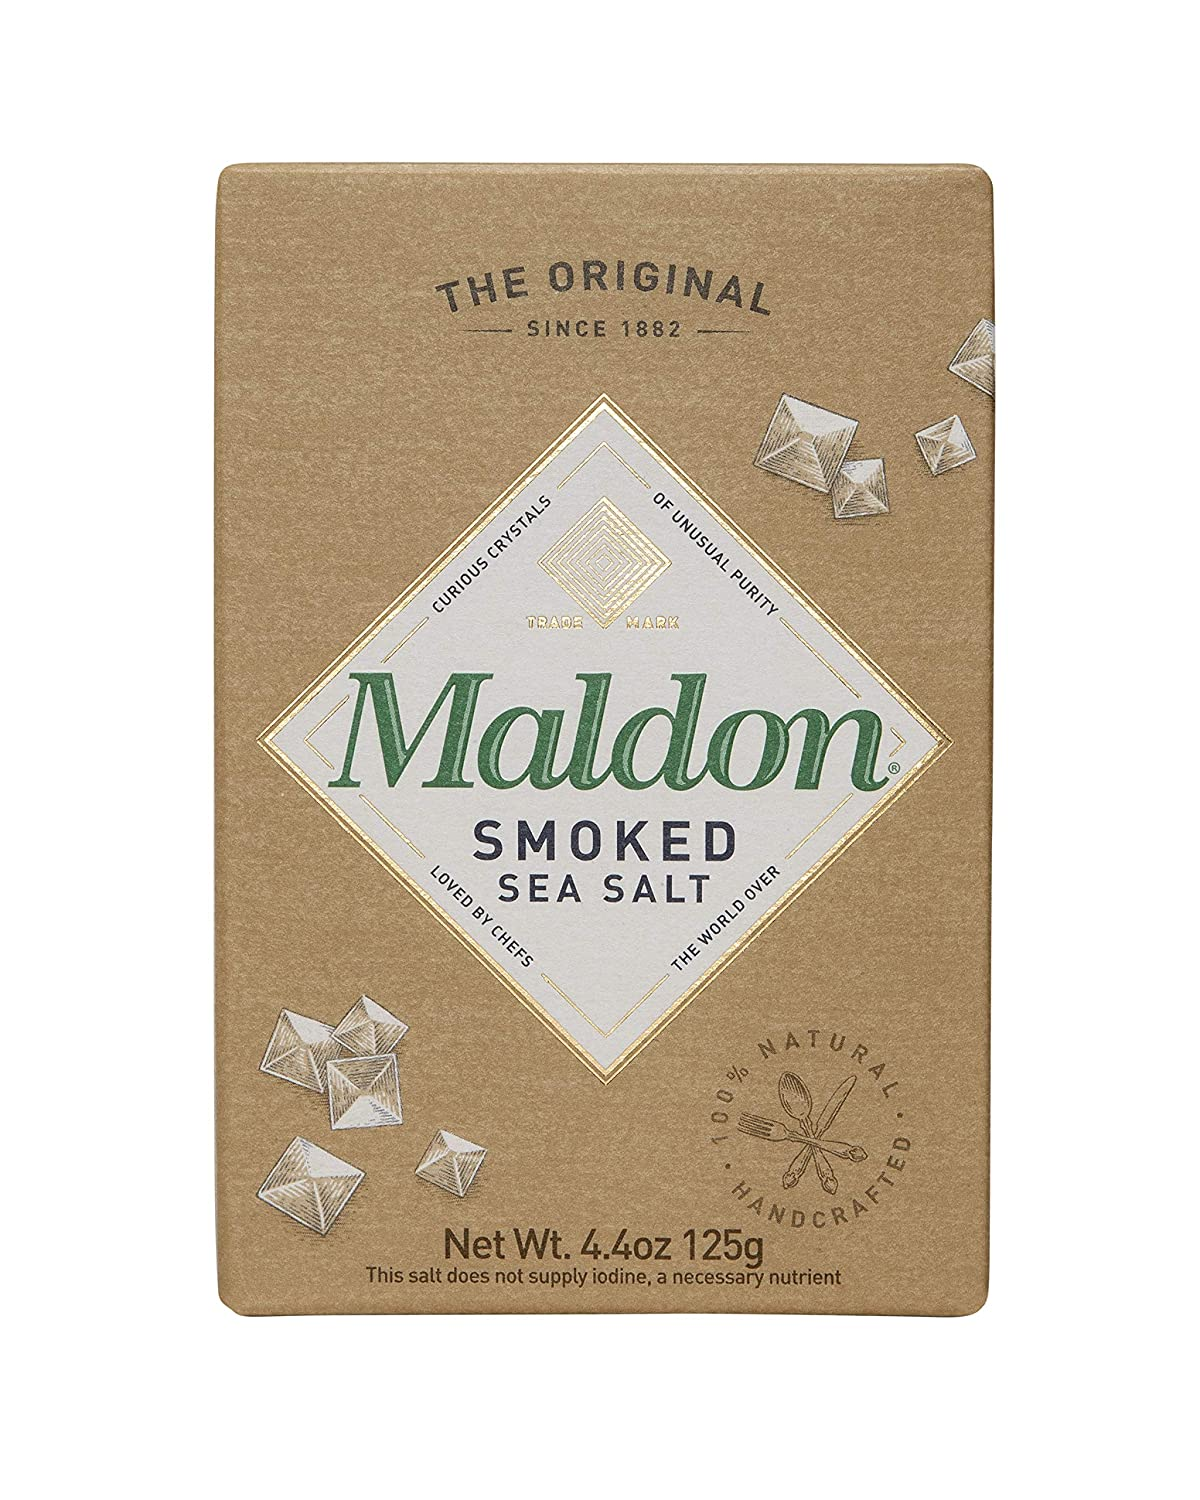 Maldon Salt, Smoked Sea Salt Flakes, 4.4 oz (125 g), Kosher, Natural, Gently Smoked Over Oak, Handcrafted, Gourmet, Pyramid Crystals : Grocery & Gourmet Food